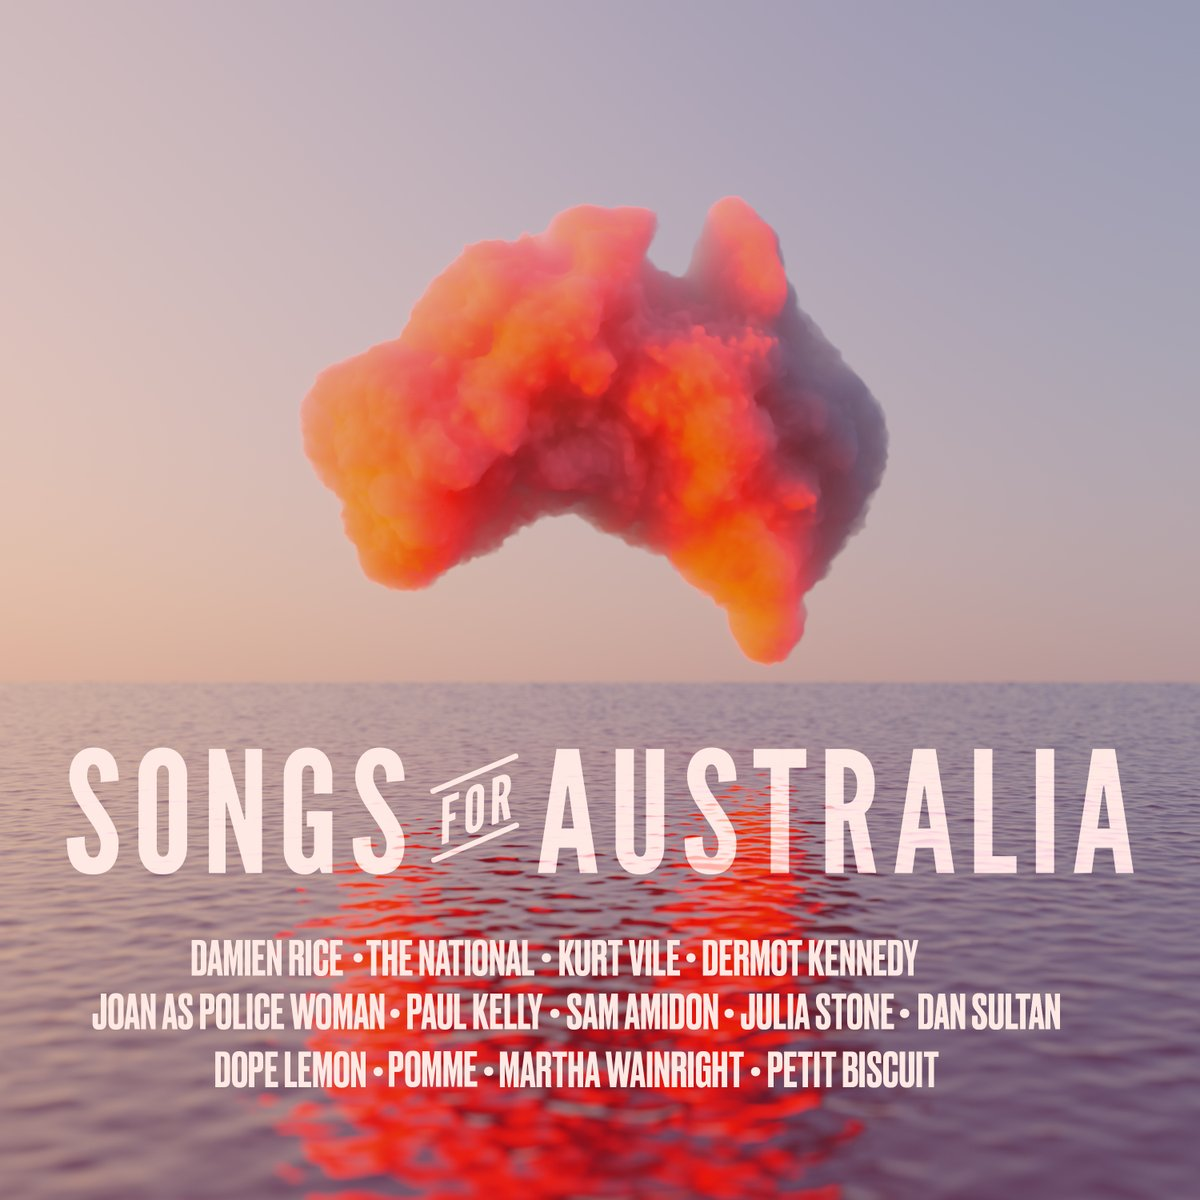 Thank you to @JuliaStoneMusic for inviting me to be a part of this project in aid of the Australian bushfire crisis. I have been lucky enough to visit Australia multiple times with my music, and have always felt so welcome.